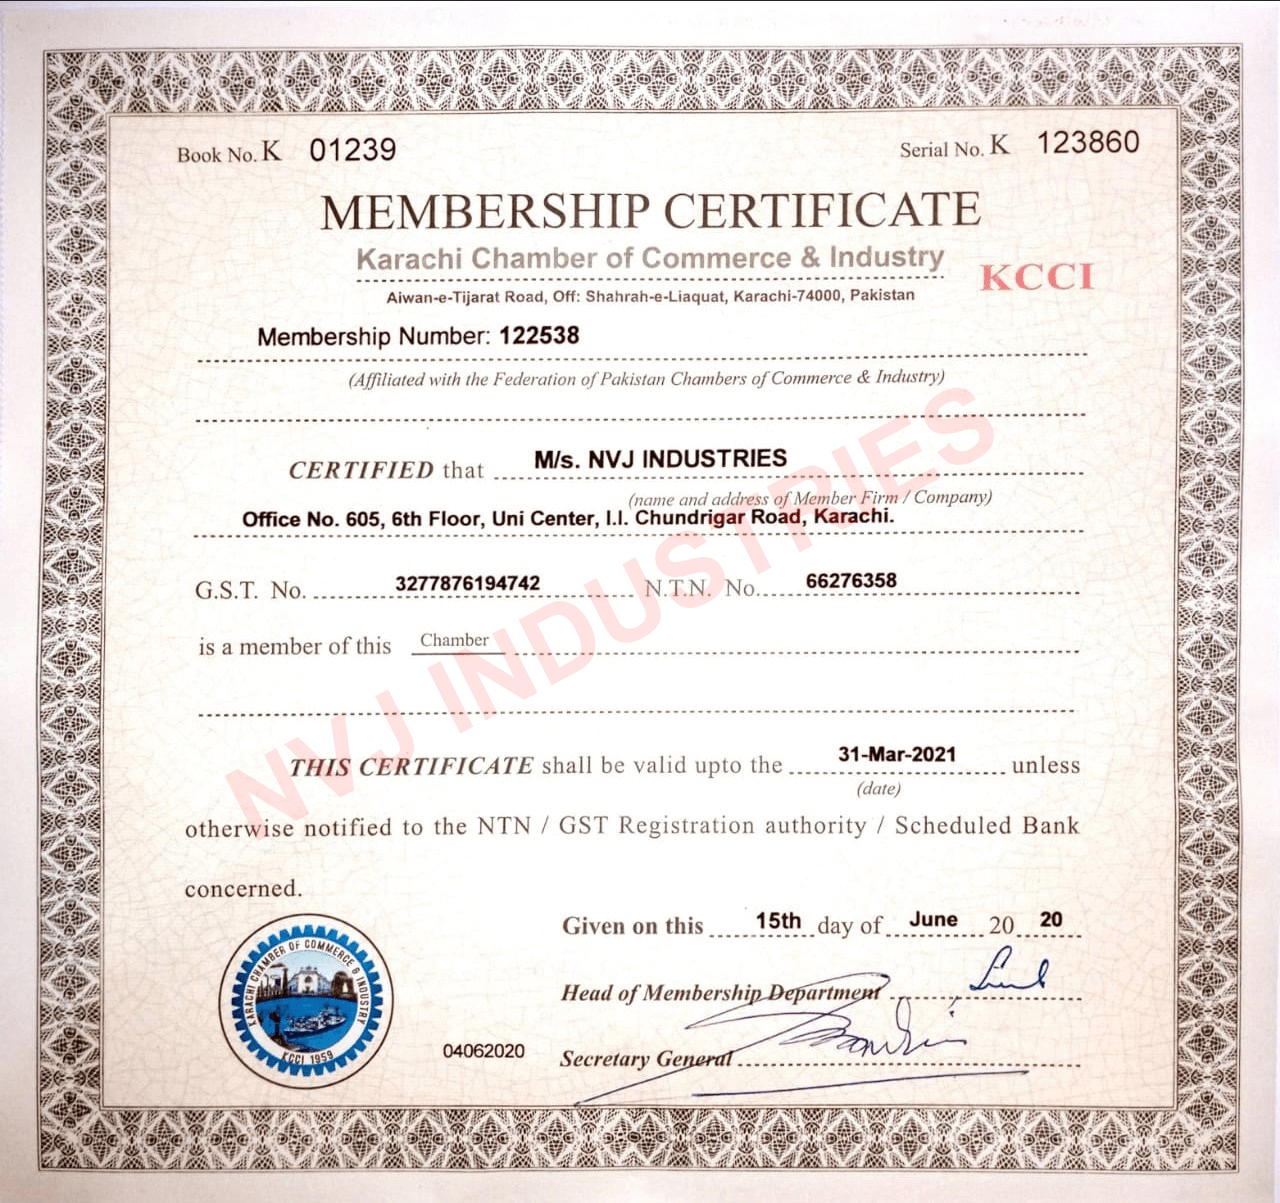 NVJ-INDUSTRIES-KARACHI-CHAMBER-OF-COMMERCE-CERTIFICATE